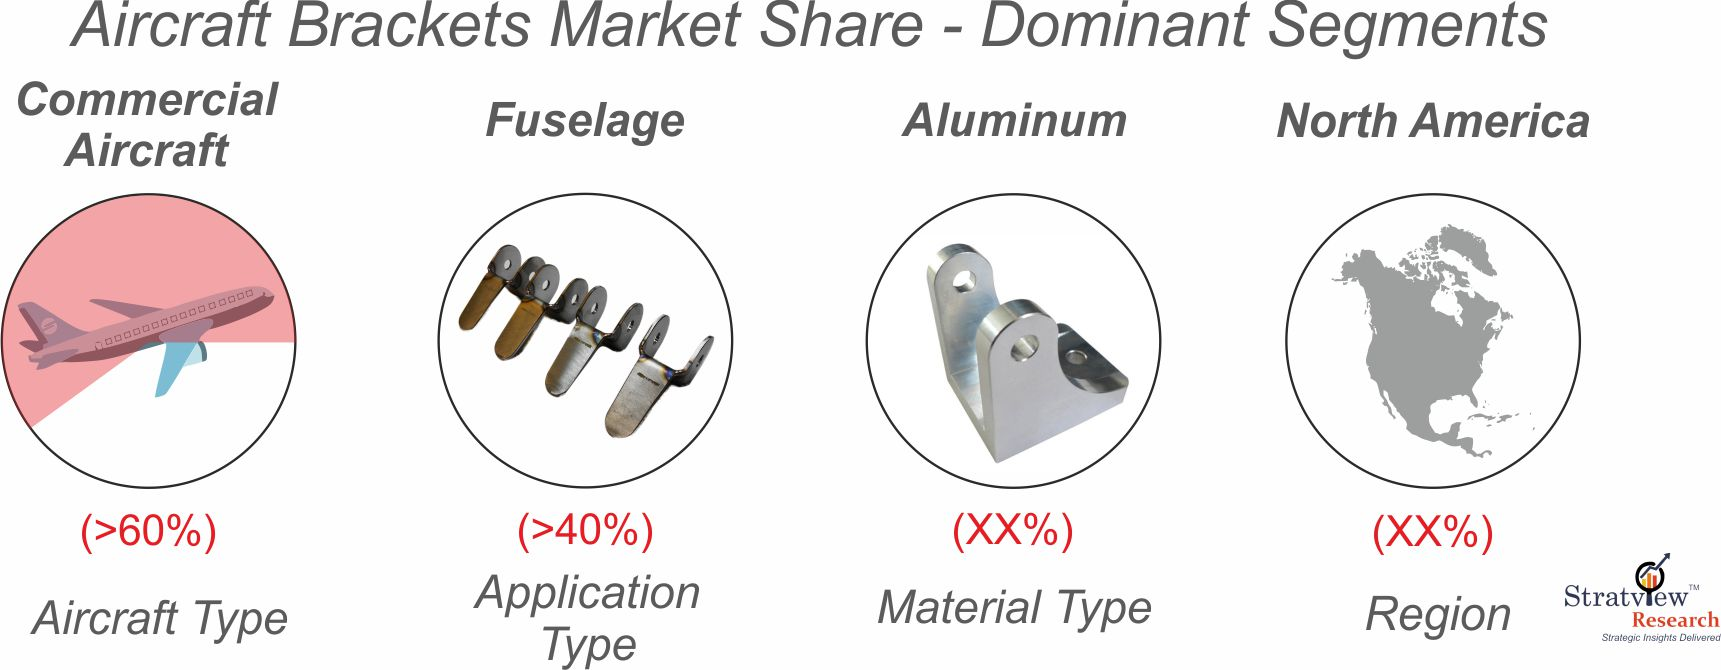 Aircraft brackets market segmentation